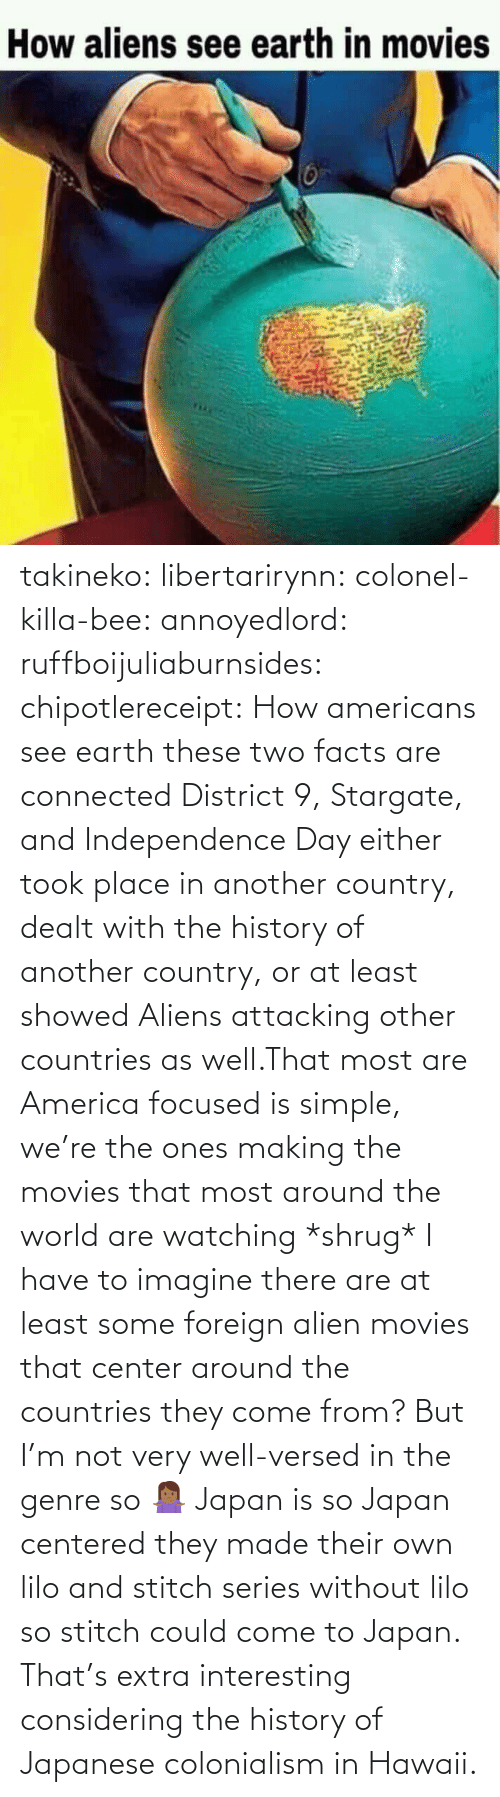 Could: takineko:  libertarirynn:  colonel-killa-bee:  annoyedlord: ruffboijuliaburnsides:  chipotlereceipt: How americans see earth these two facts are connected     District 9, Stargate, and Independence Day either took place in another country, dealt with the history of another country, or at least showed Aliens attacking other countries as well.That most are America focused is simple, we're the ones making the movies that most around the world are watching *shrug*   I have to imagine there are at least some foreign alien movies that center around the countries they come from? But I'm not very well-versed in the genre so 🤷🏾‍♀️   Japan is so Japan centered they made their own lilo and stitch series without lilo so stitch could come to Japan.    That's extra interesting considering the history of Japanese colonialism in Hawaii.